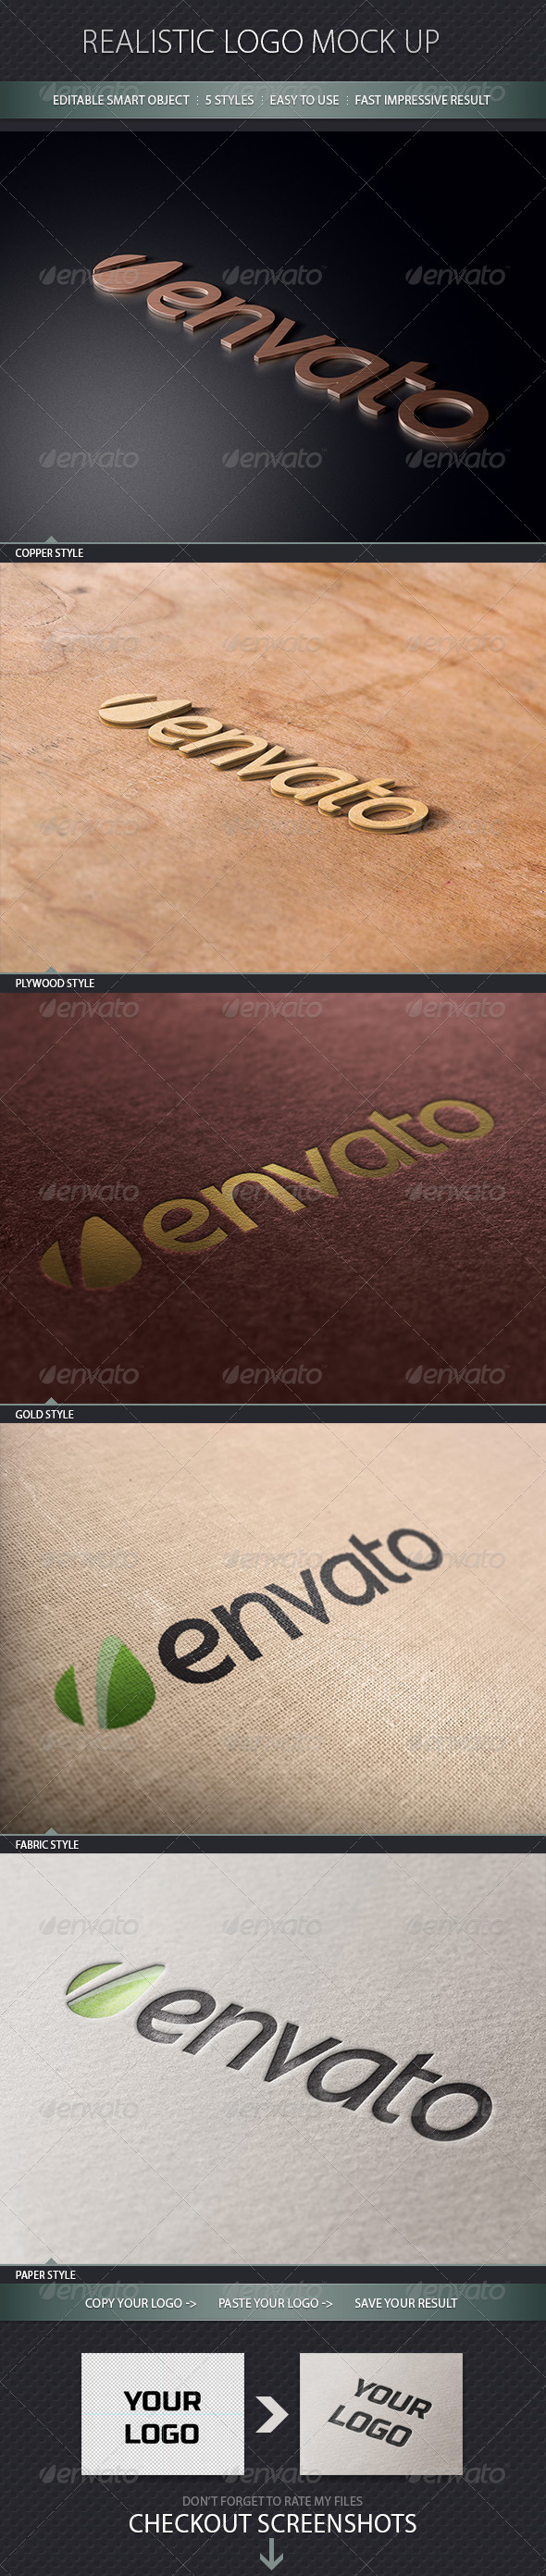 GraphicRiver Realistic Logo Mock Up 4265012